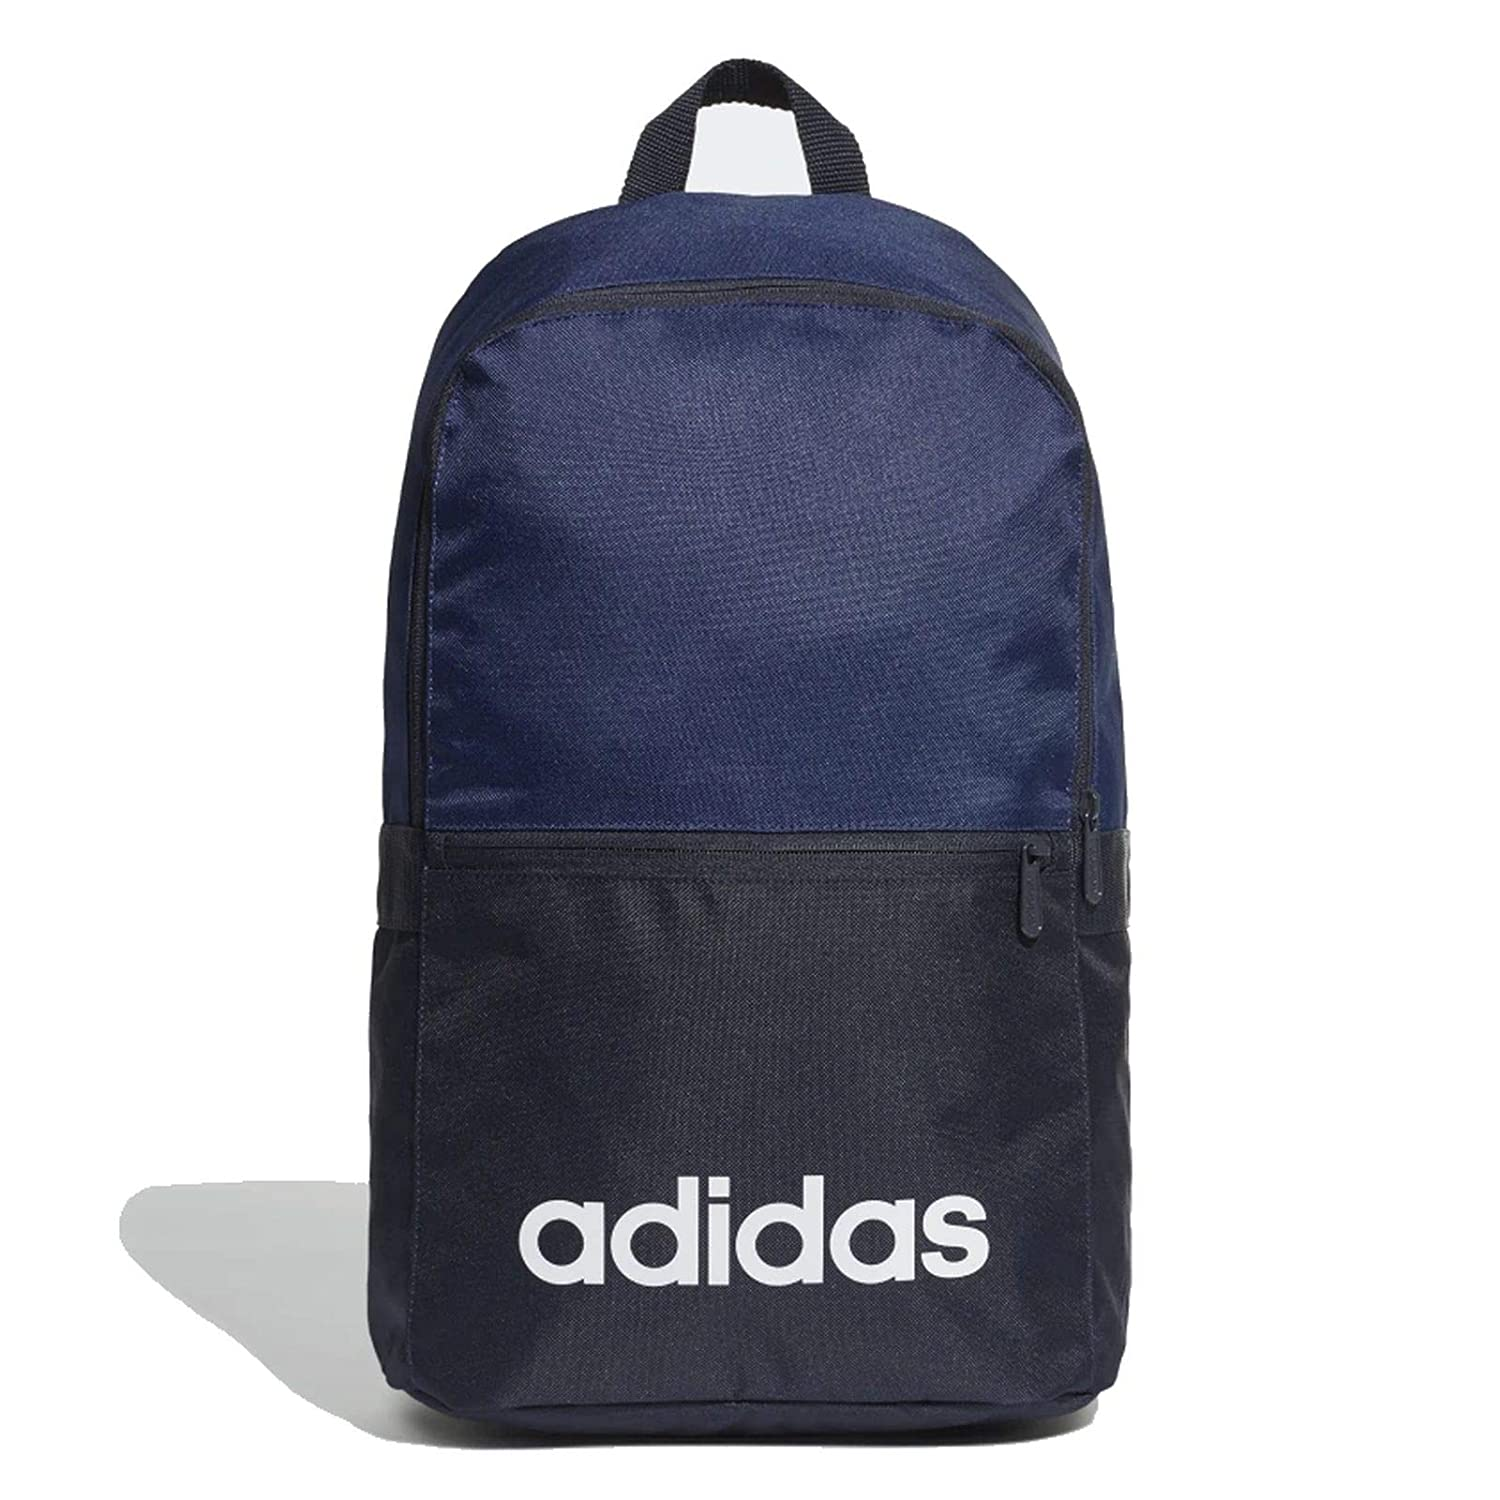 adidas DT8633 Gym Backpack, Unisex Adulto, Black/White, Única: Amazon.es: Equipaje